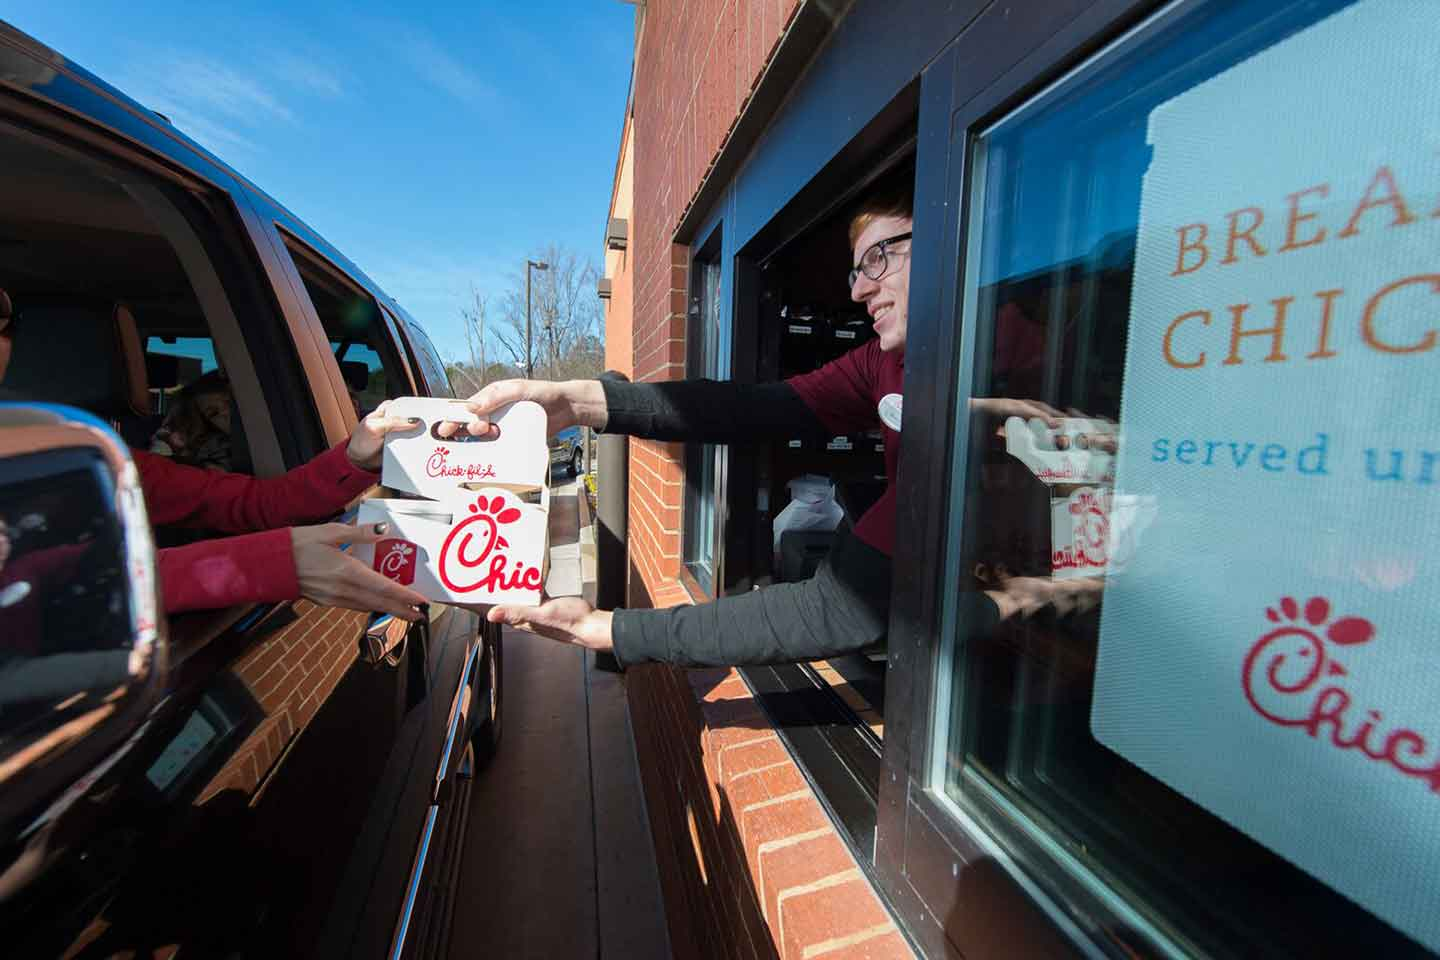 chick-fil-a loyalty program - drive through mobile app -- candybar loyalty